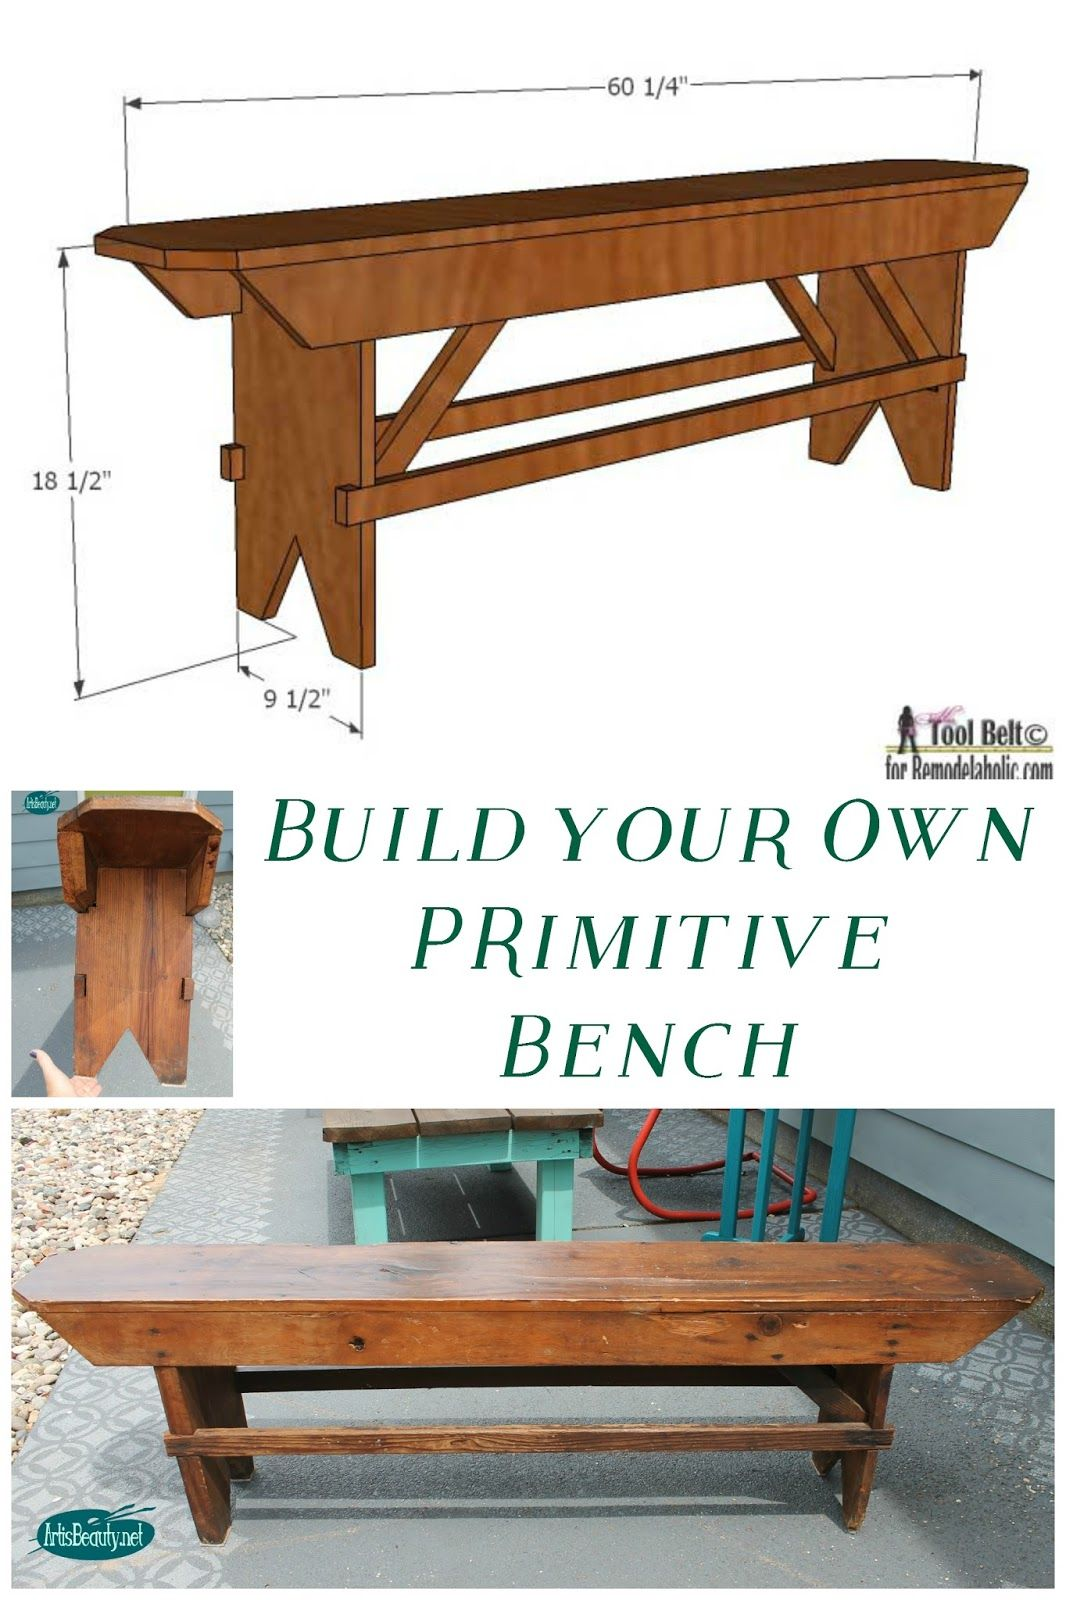 build your own primitive bench furniture pieces diy furniture woodworking projects. Black Bedroom Furniture Sets. Home Design Ideas